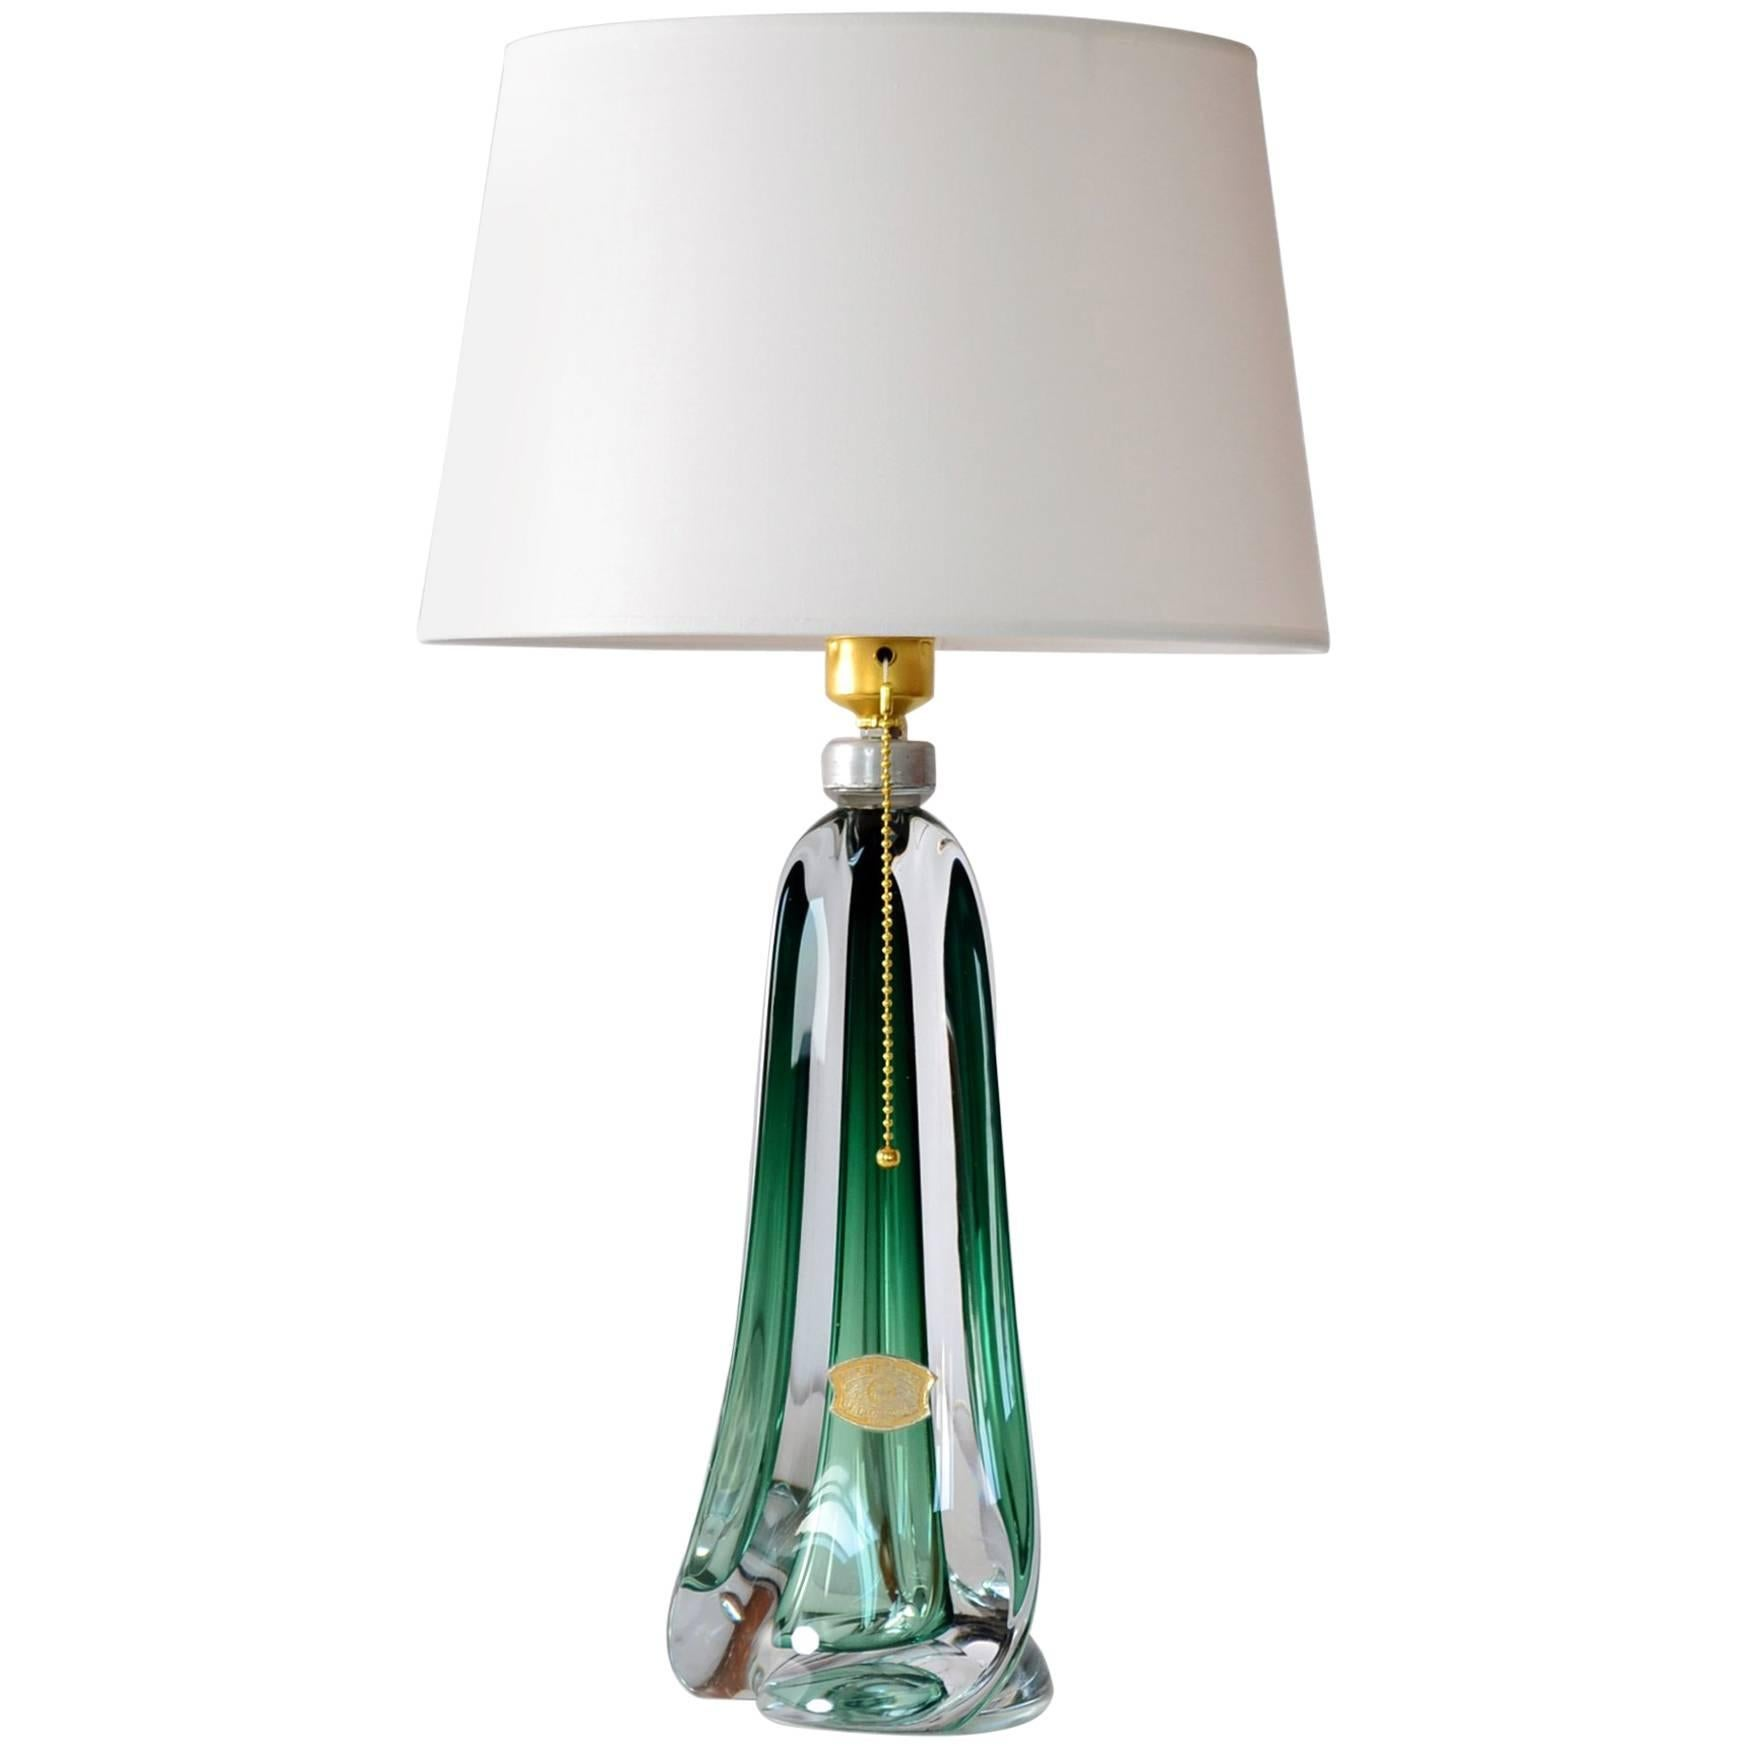 Belgian Emerald Green Glass Table Lamp Of Val St. Lambert, 1950s For Sale